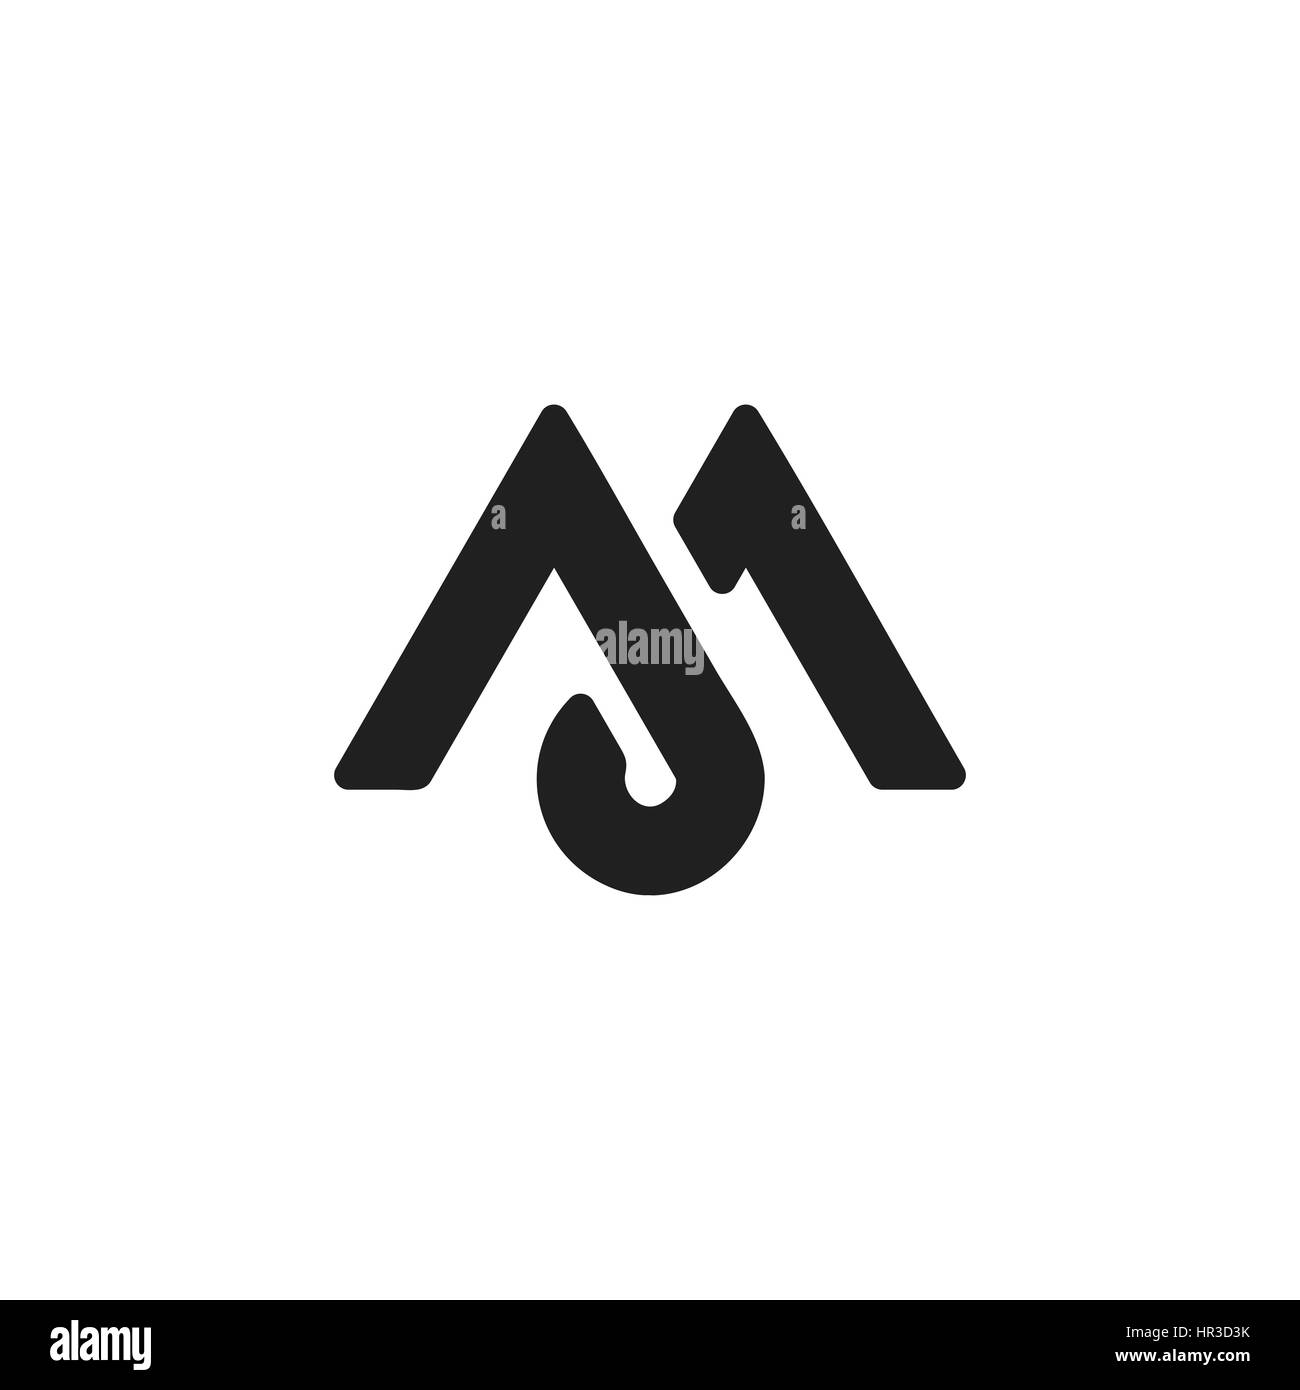 Stylish illustration of letter M that can be used for a logo